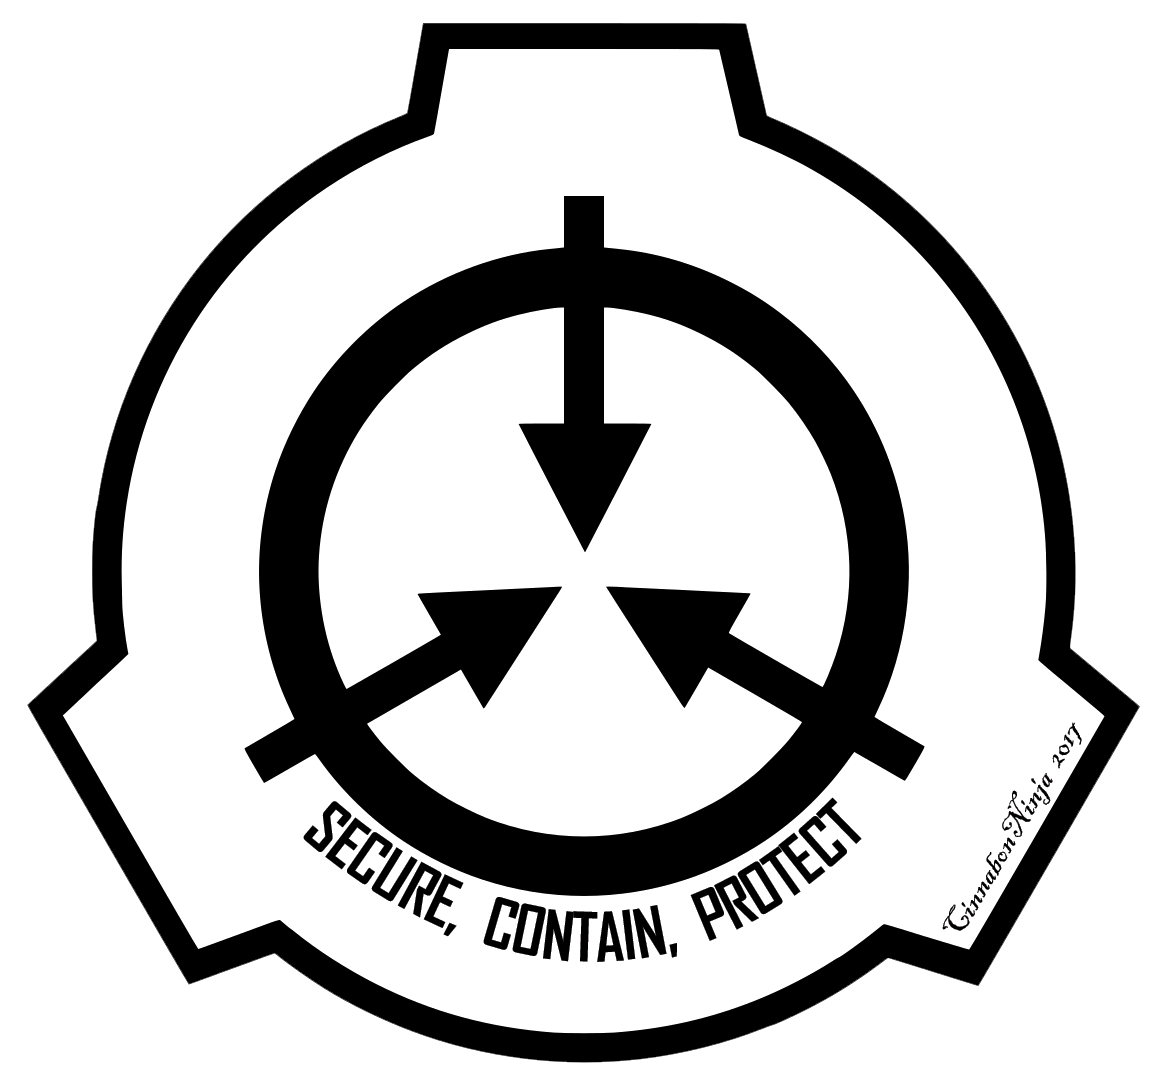 Scpf special containment procedures foundation application